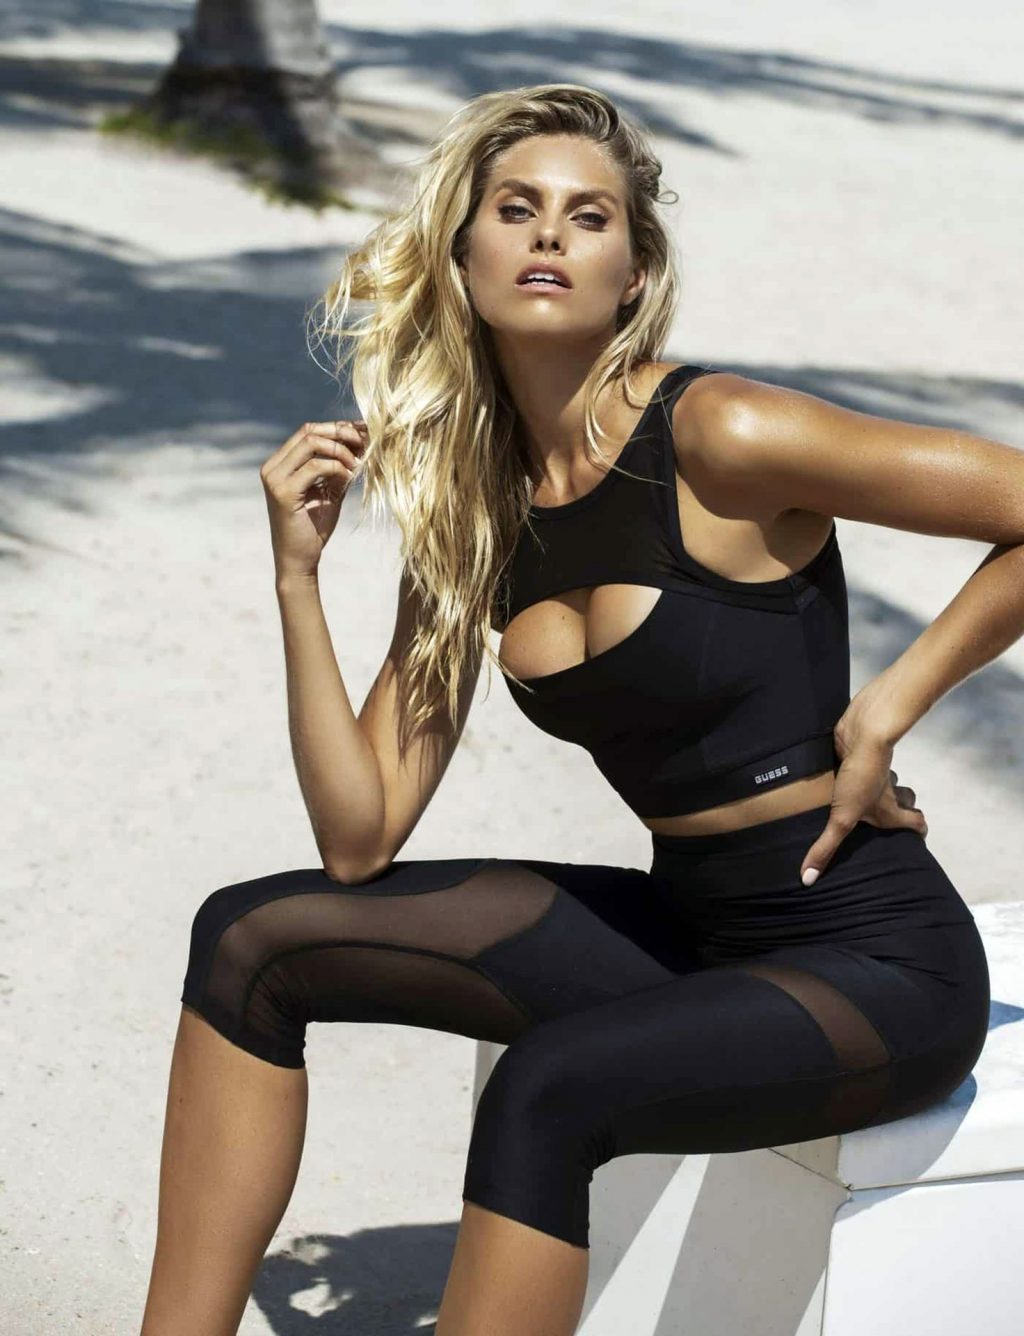 Natalie Roser Poses for GUESS (7 Photos)